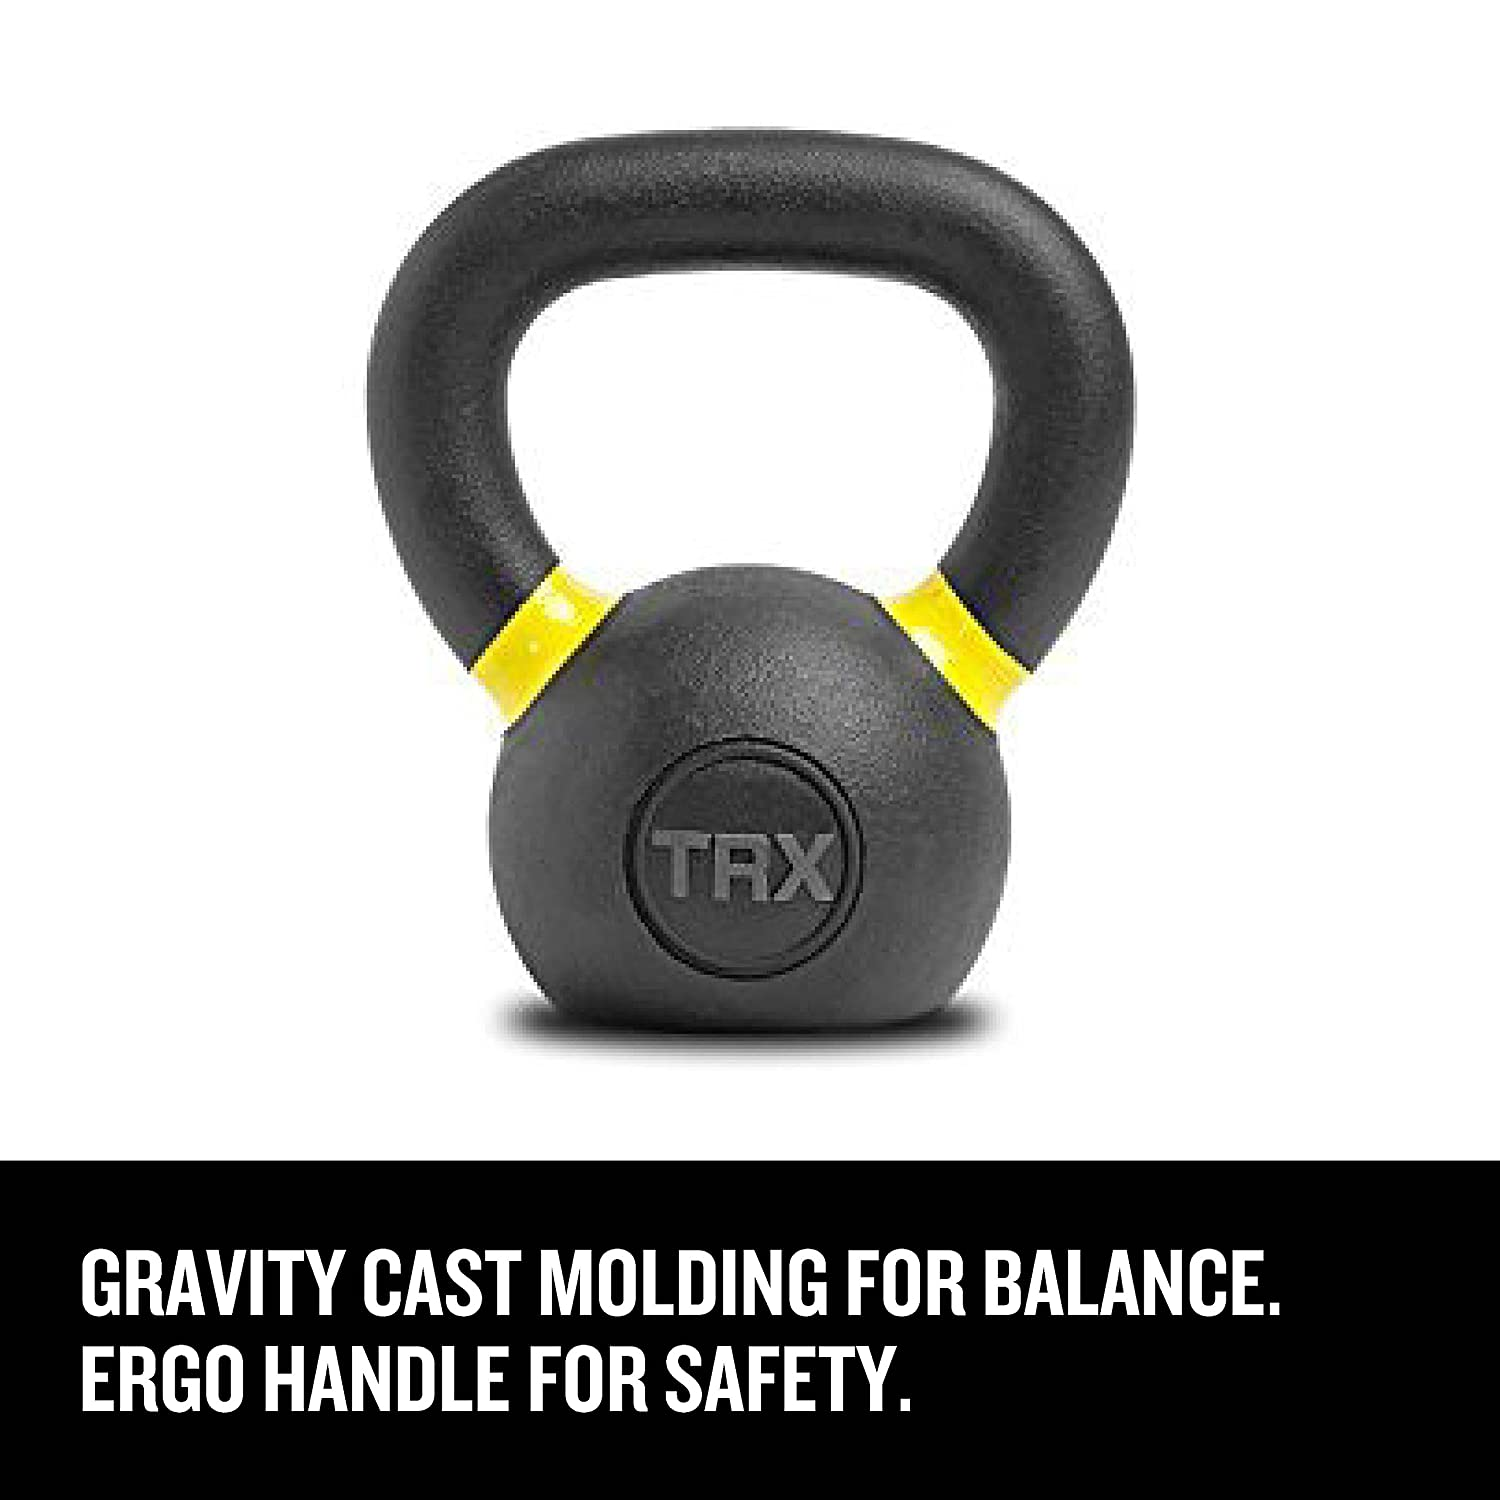 Trx Training Gravity Cast Kettlebell Comfortable Circuit Climb Muscle Fitness Handle For Easy Gripping Sports Outdoors